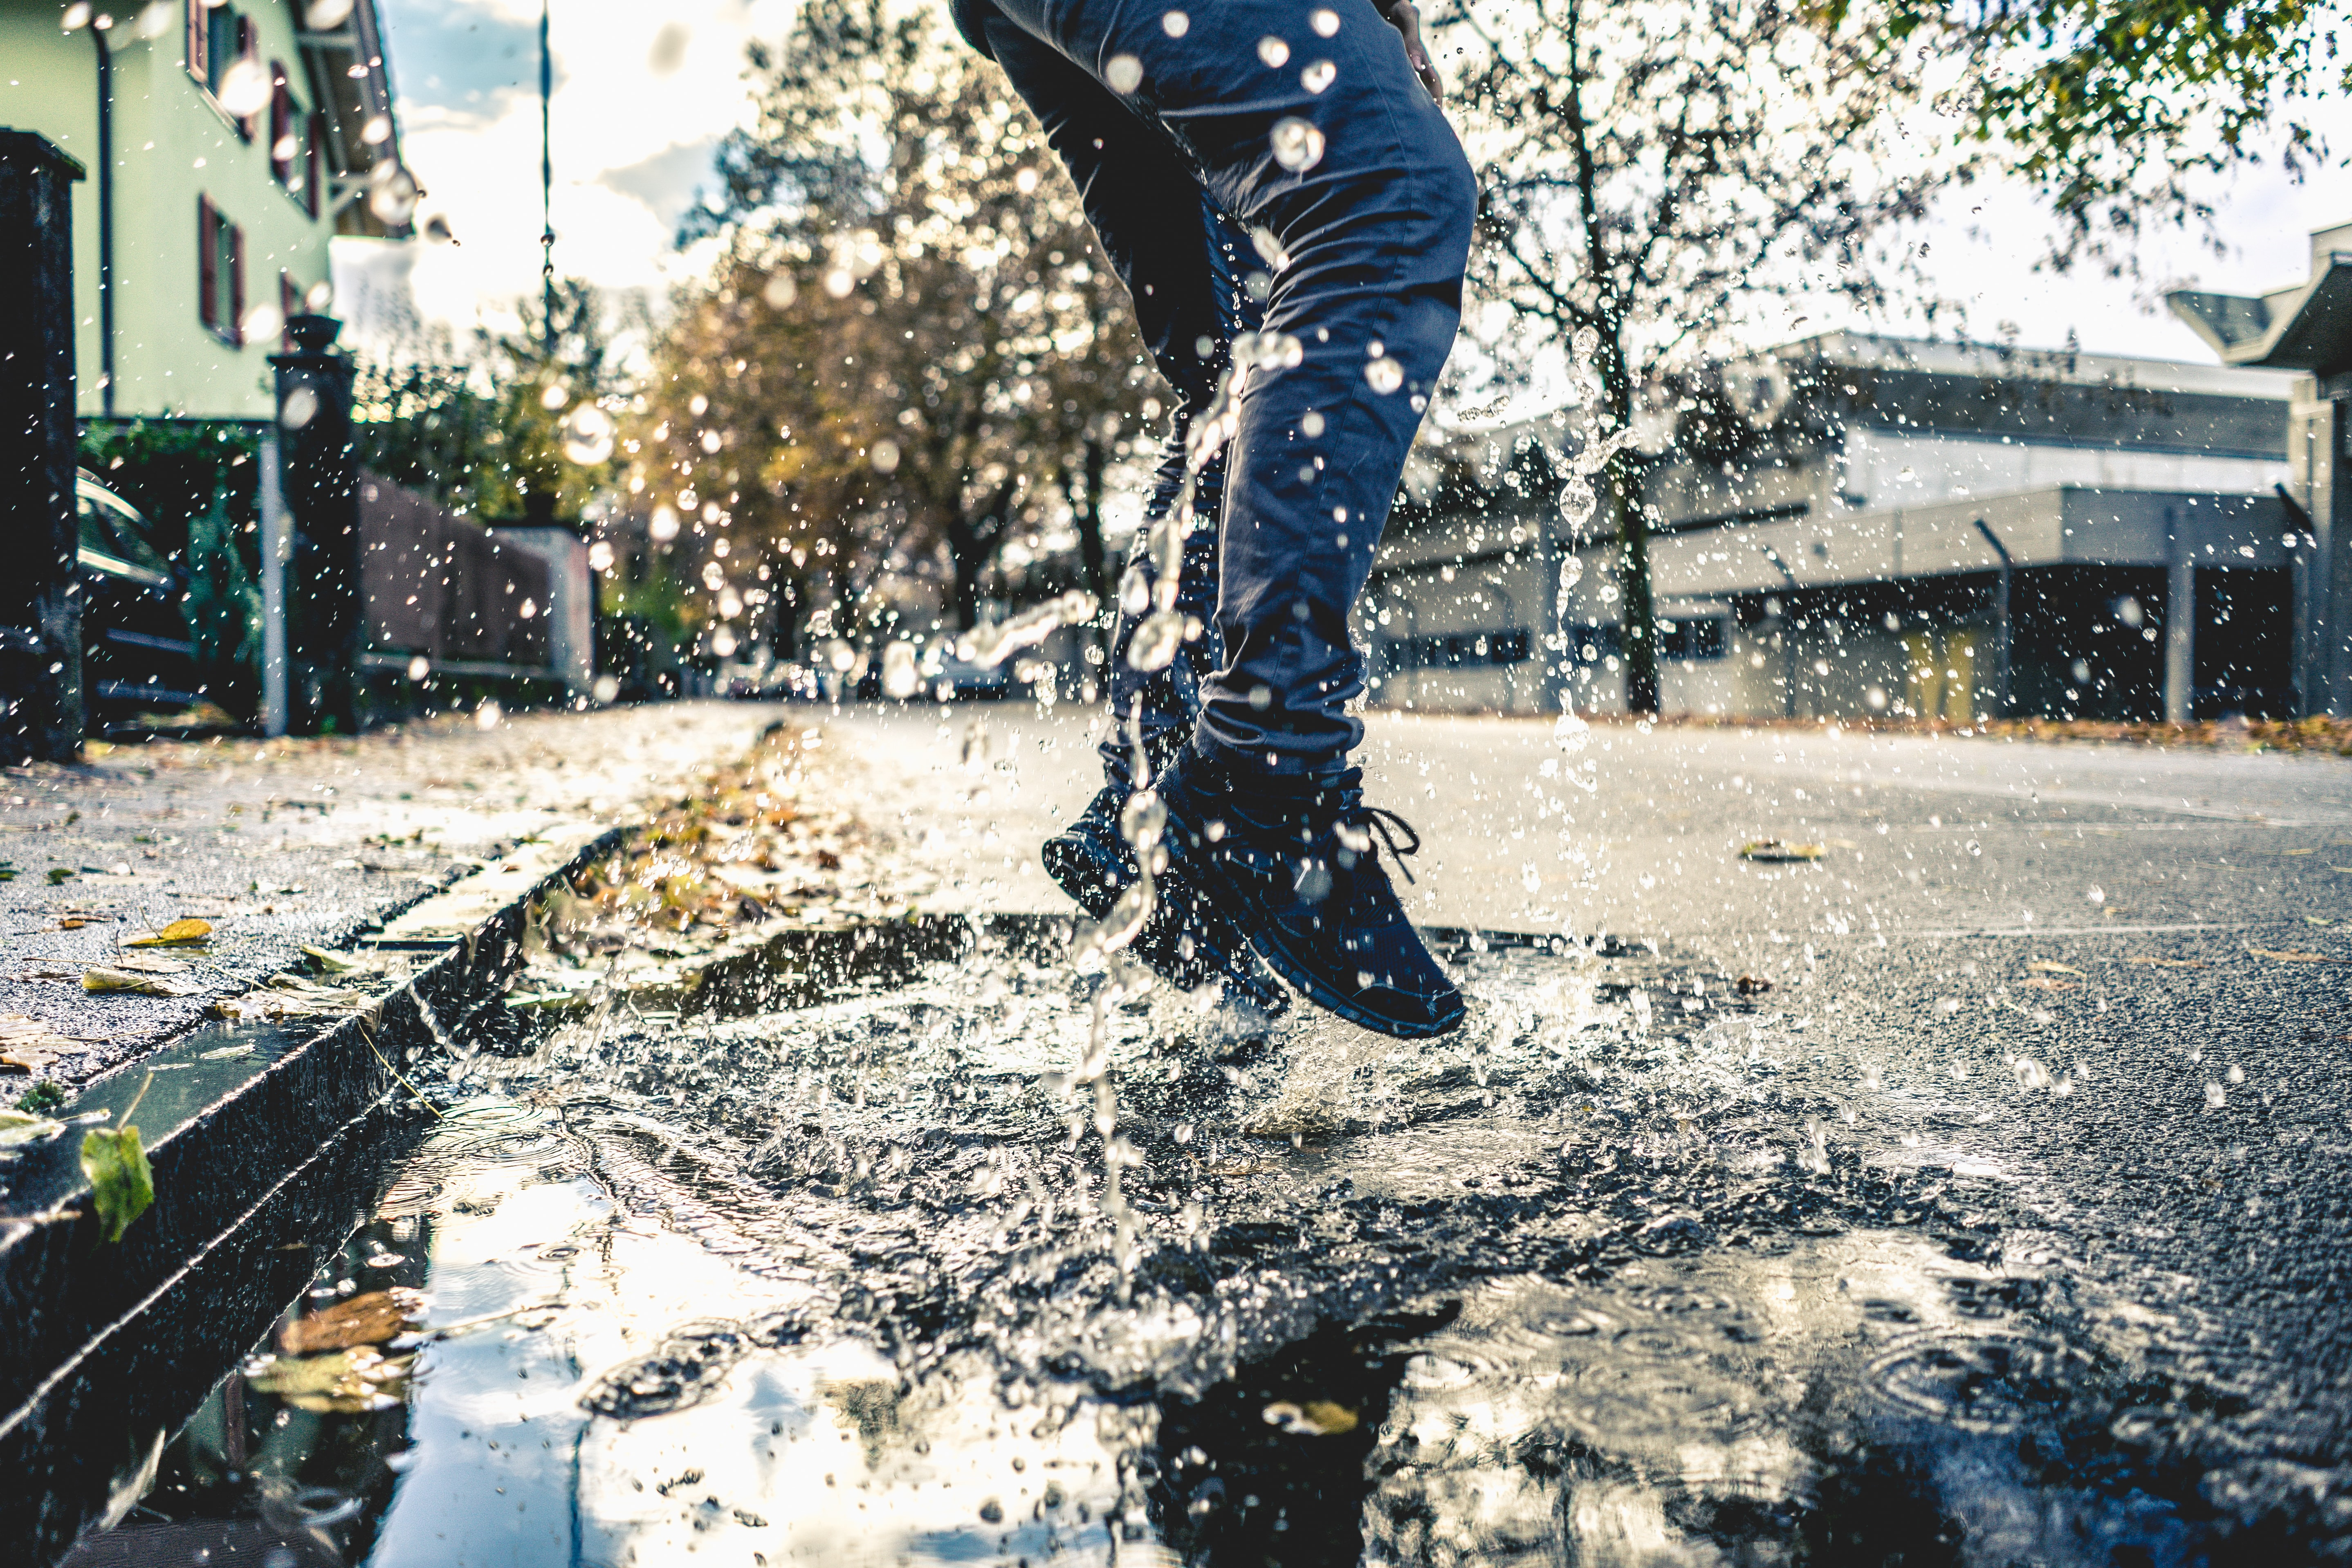 jumping in a puddle